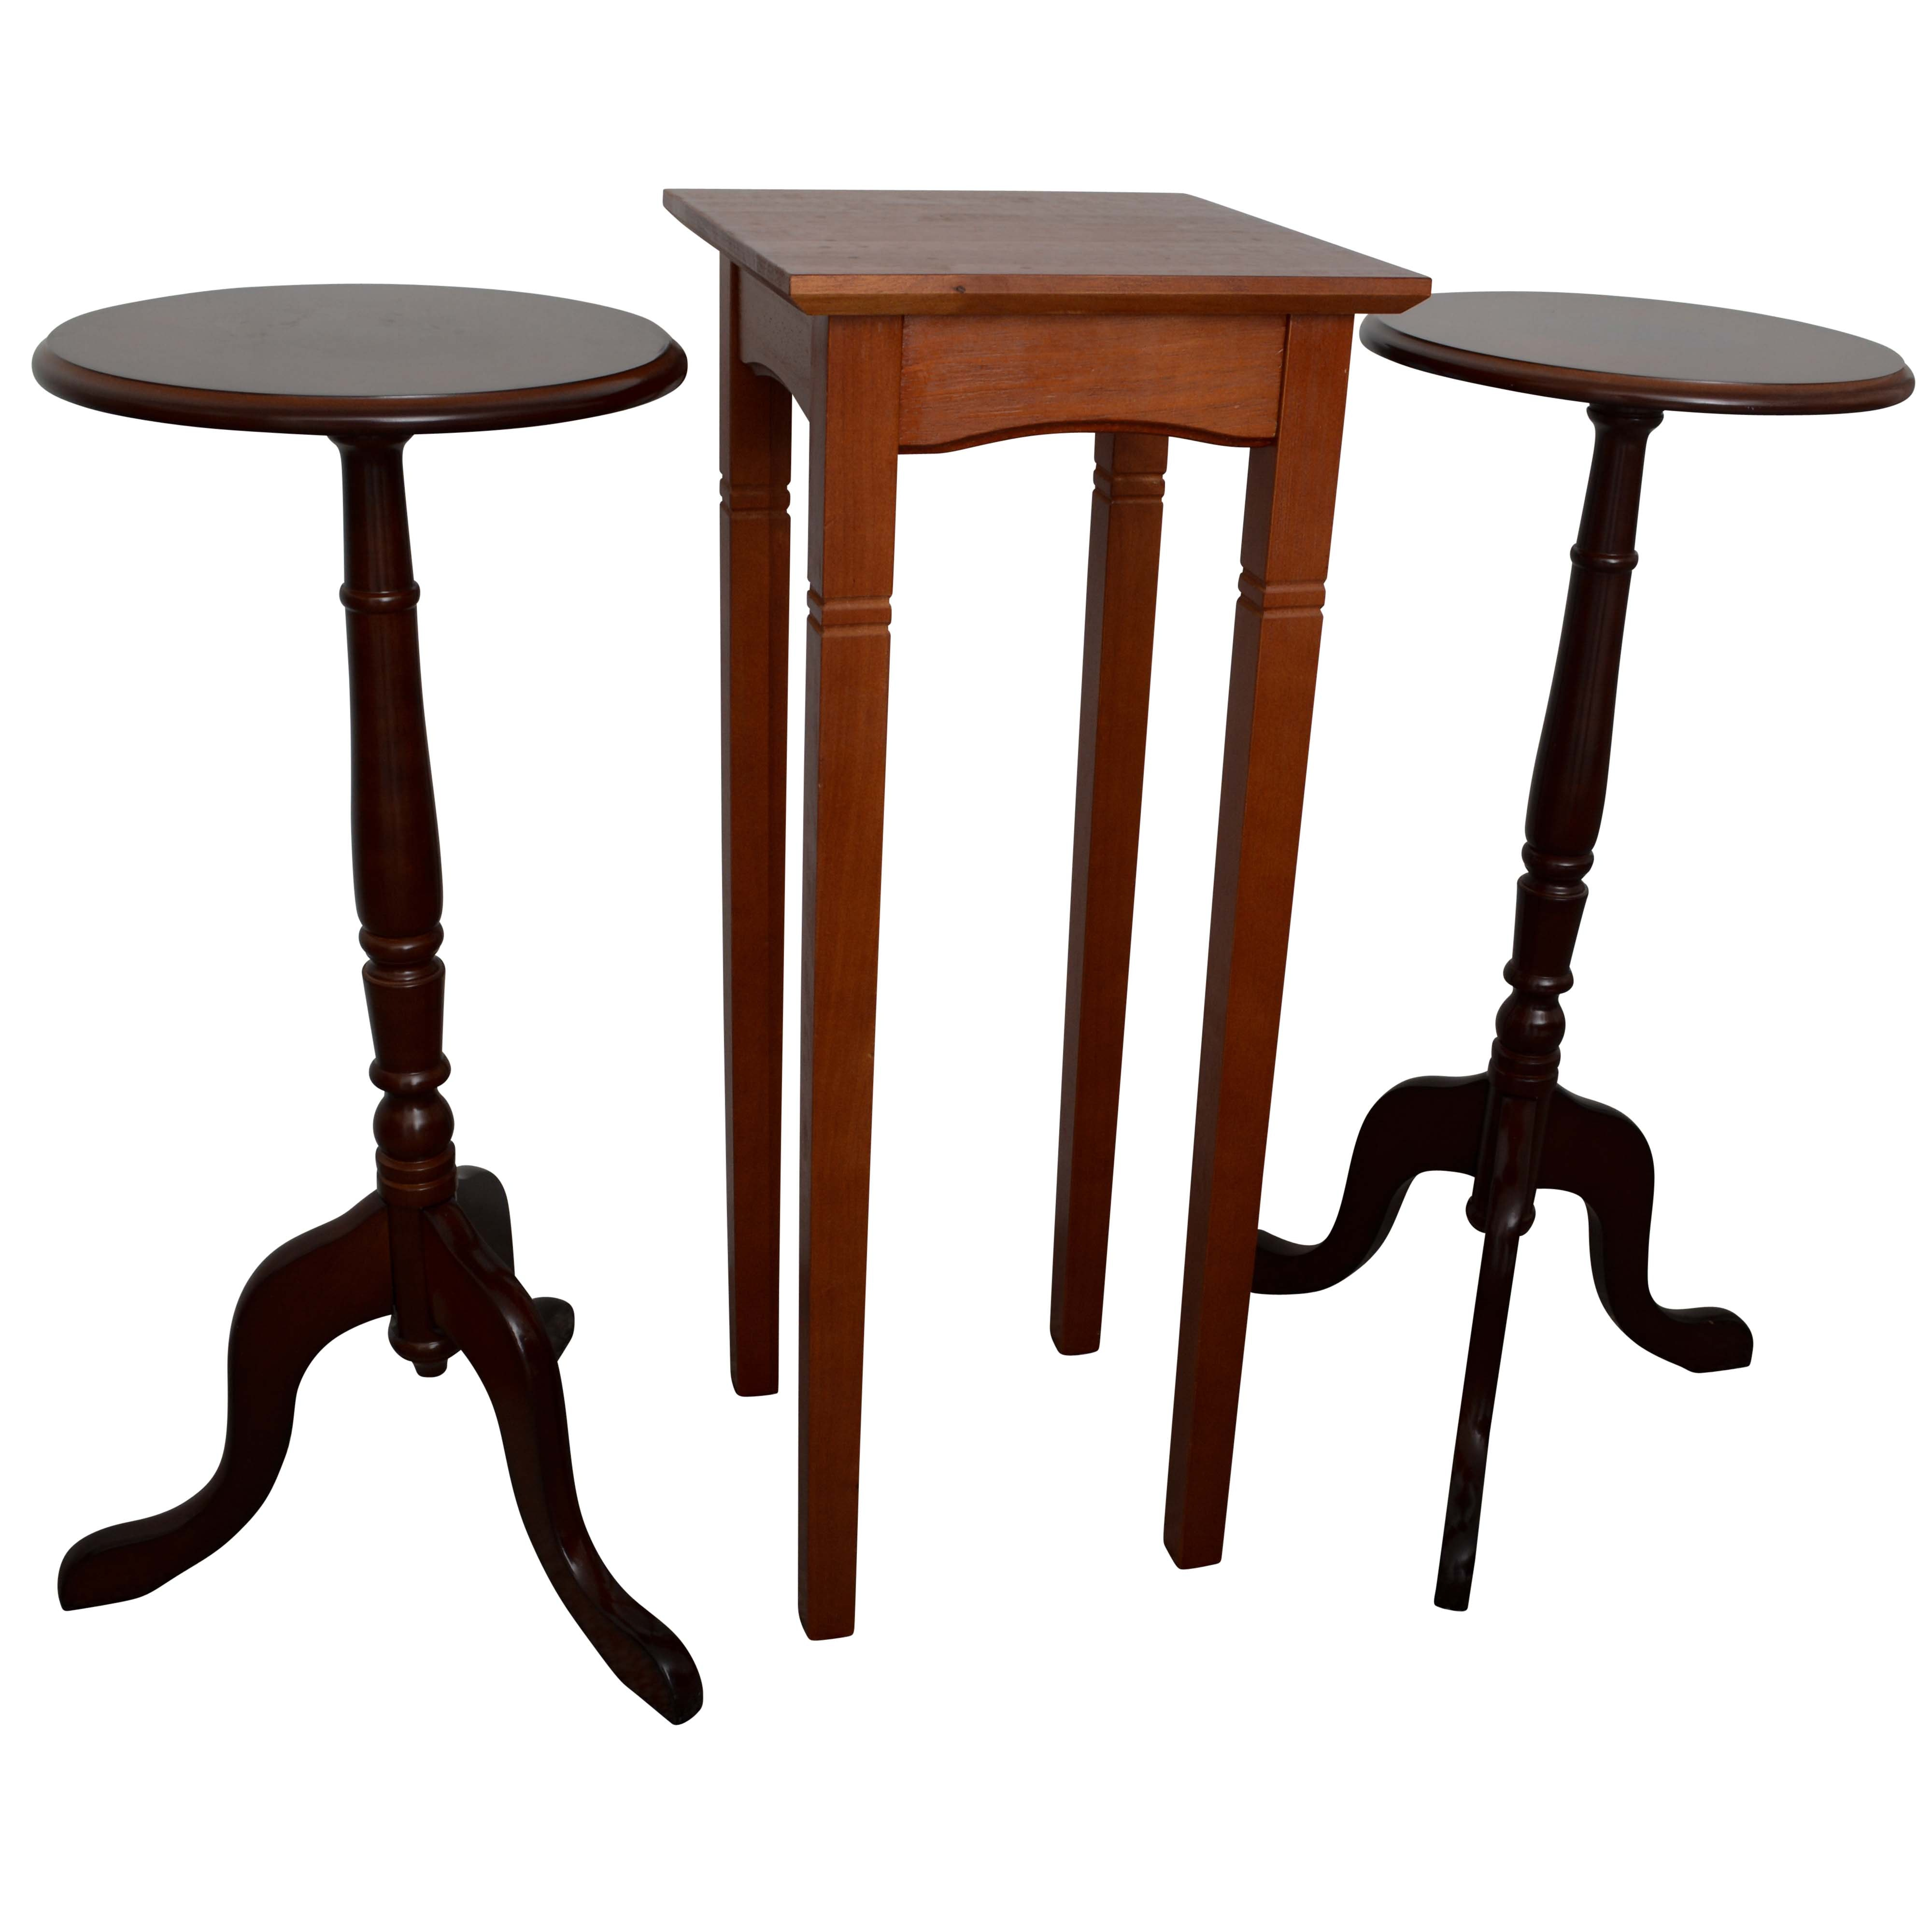 Wood Accent Tables Featuring The Bombay Company